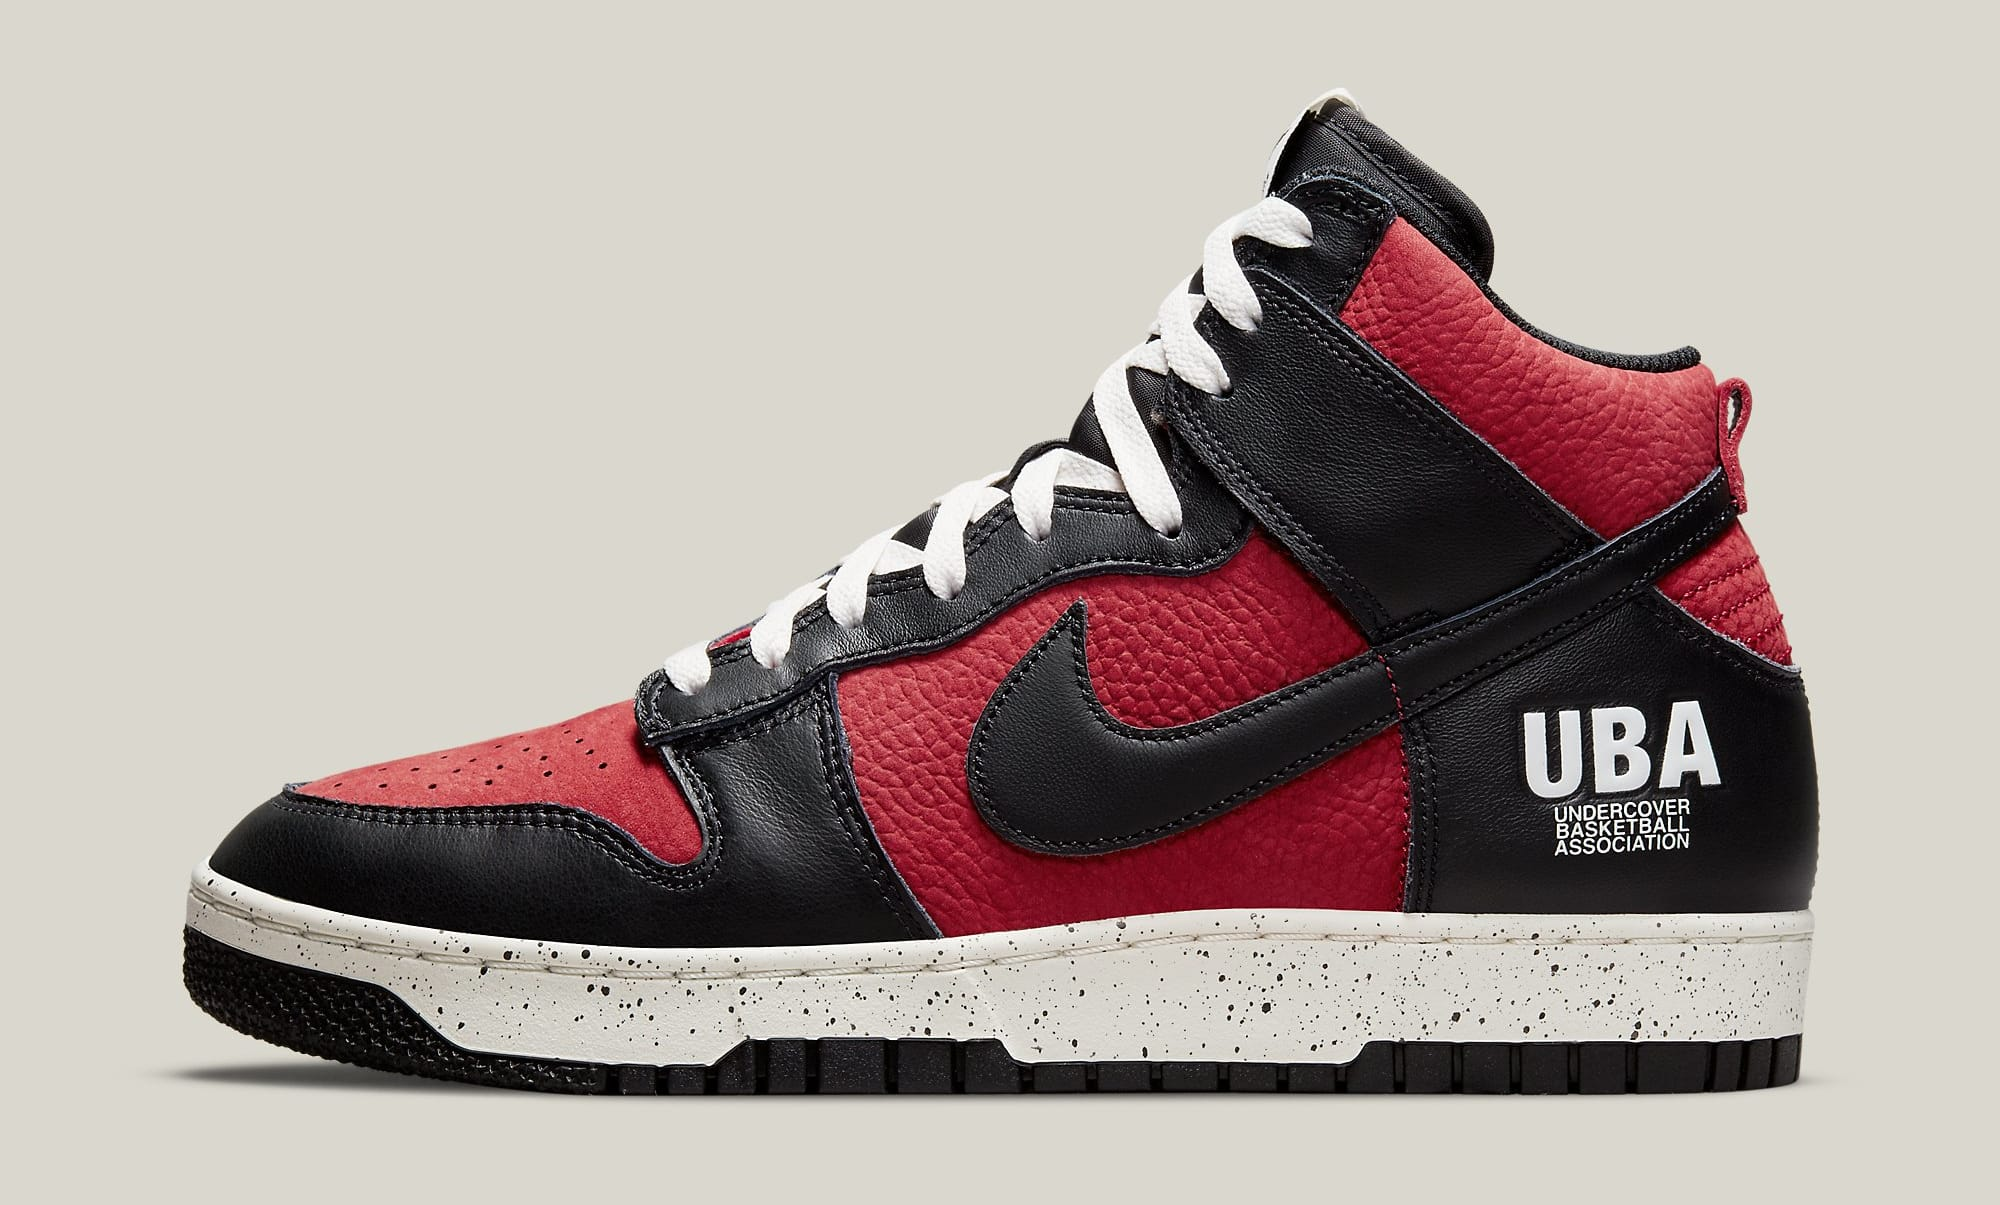 Undercover x Nike Dunk High 1985 'Gym Red' DD9401-600 Lateral